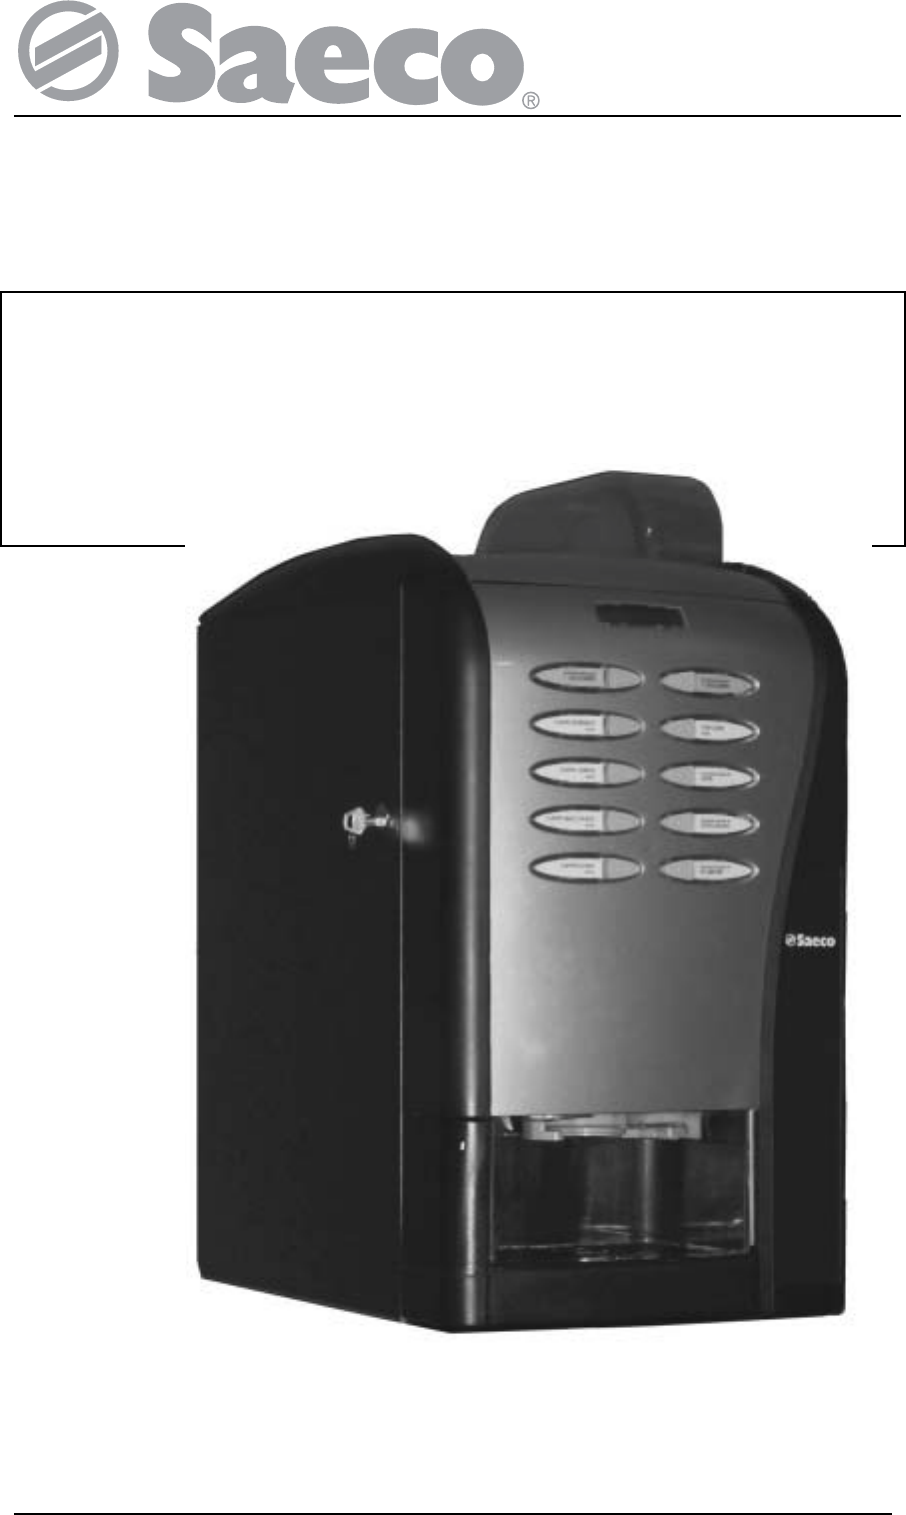 Saeco Coffee Makers Coffee Grinder SG200E User Guide ManualsOnline.com